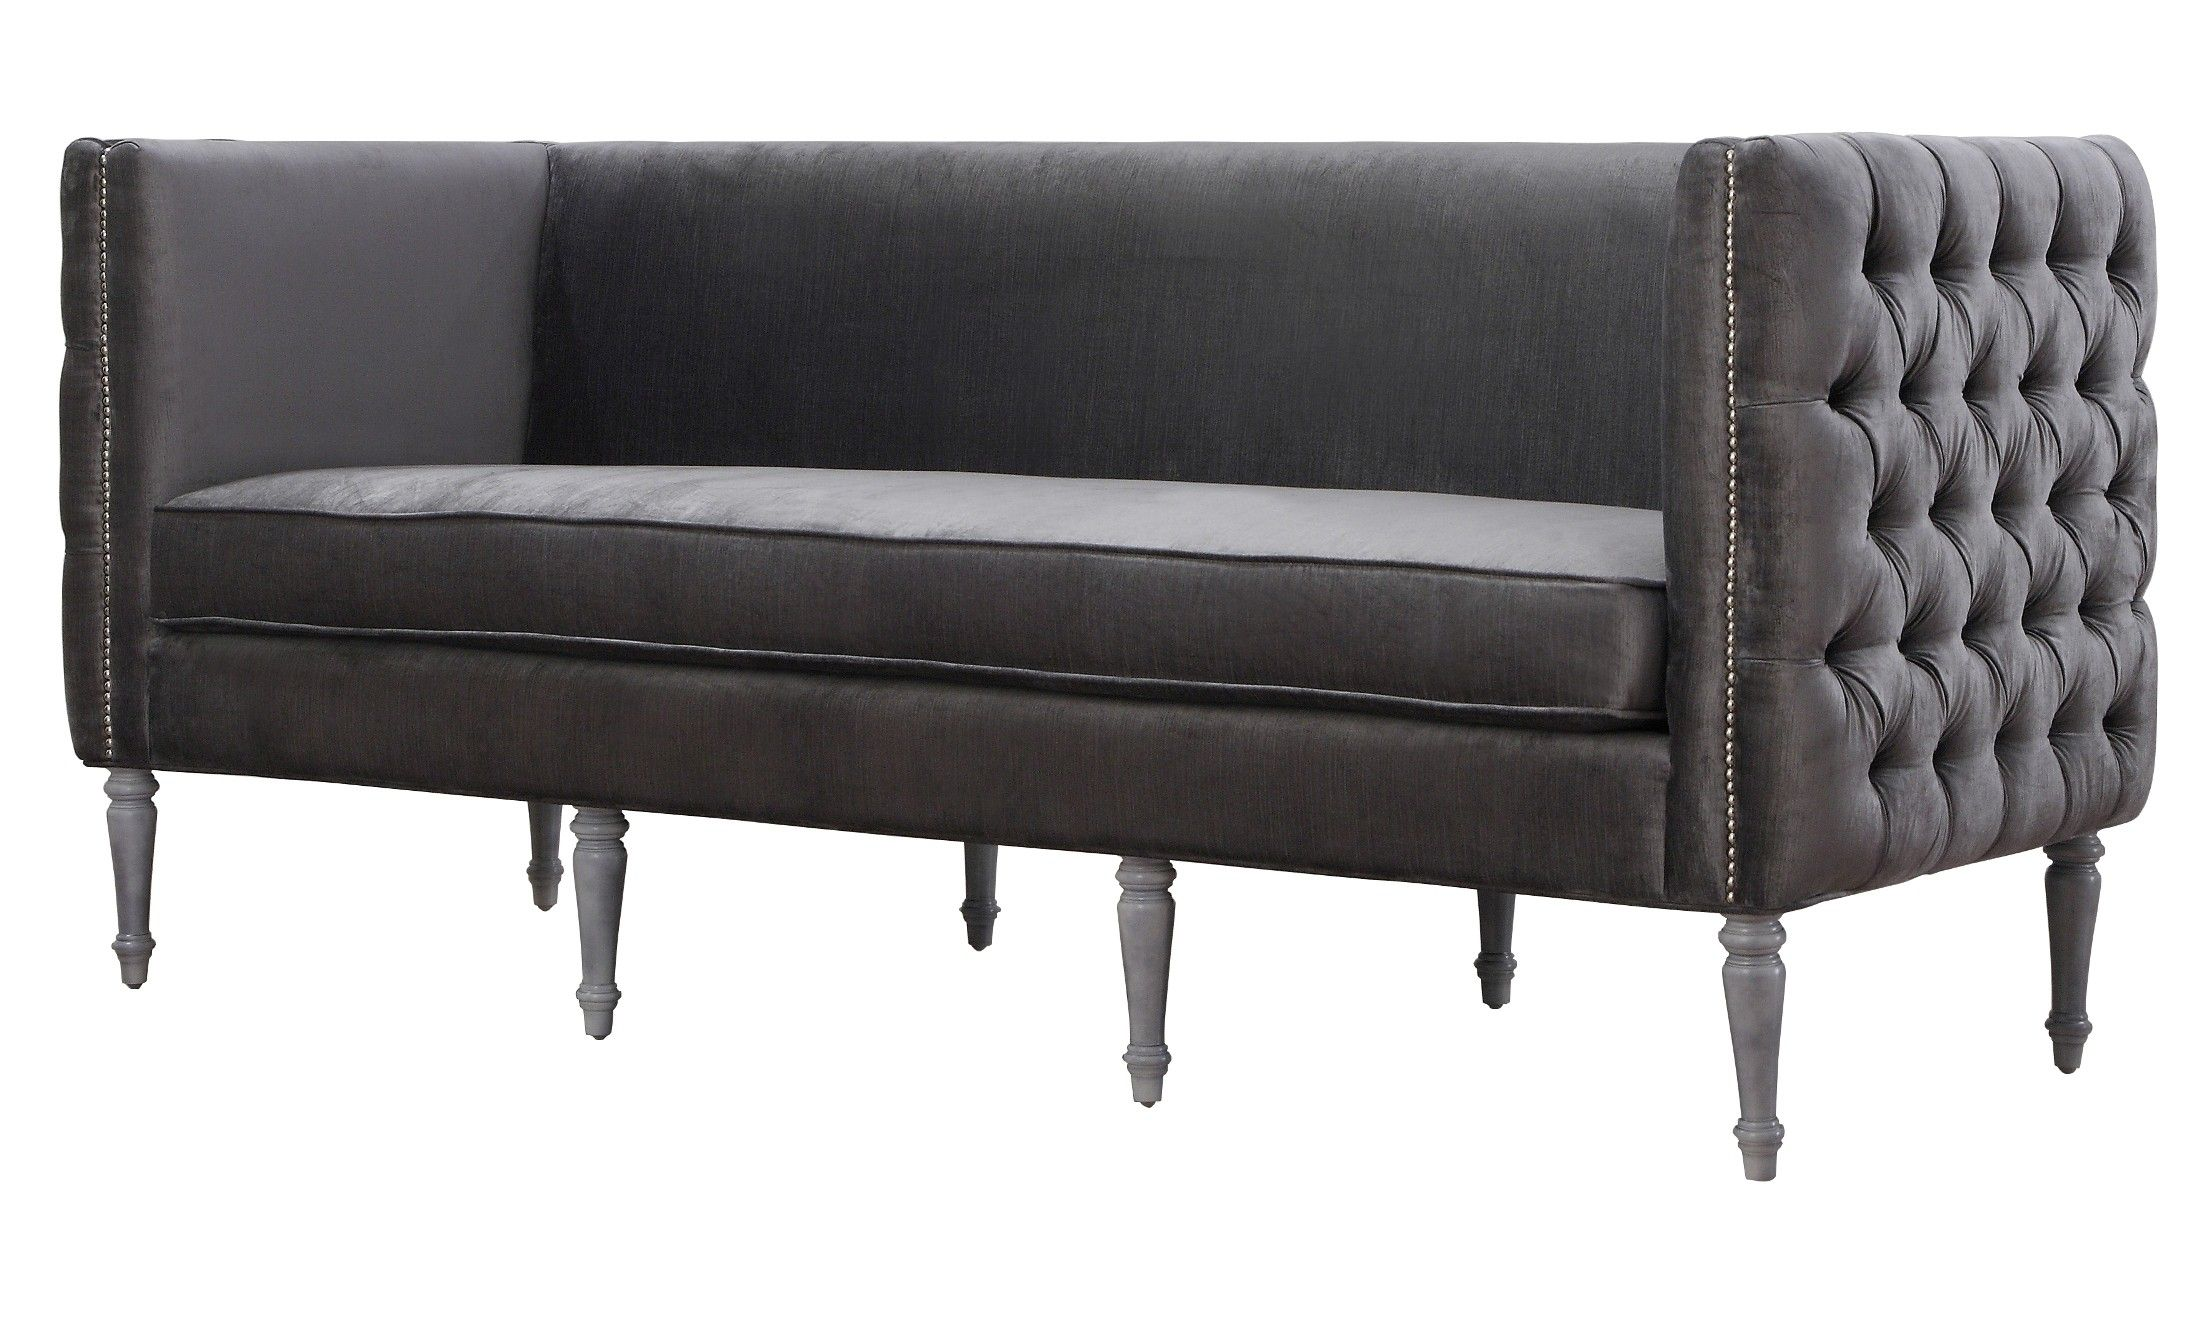 Bold, Boxy And Glamorous, Our Fiora Sofa Is Luxury At Itu0027s Finest. A